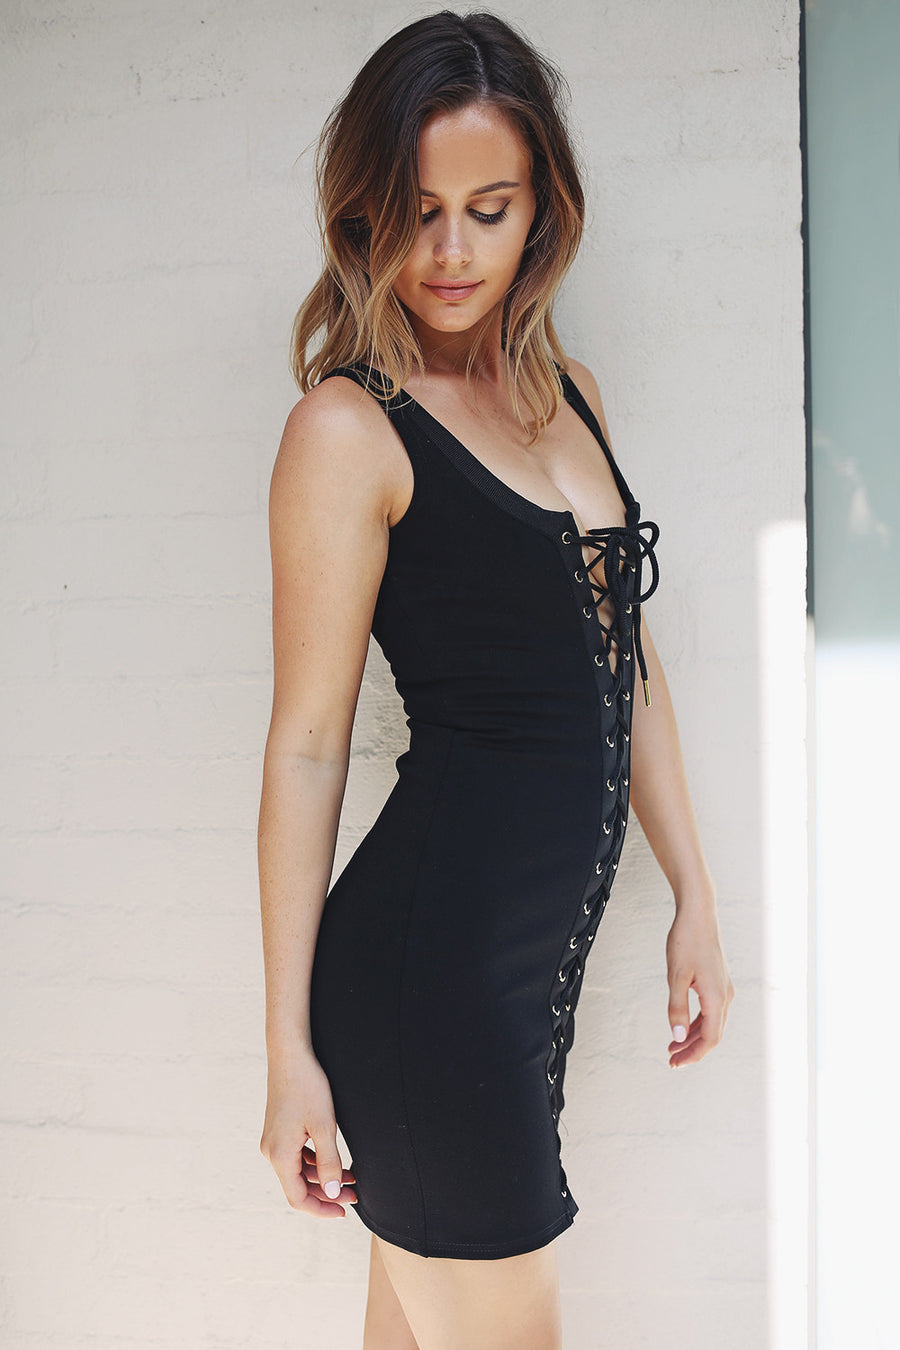 Laced Up La Renta Dress - HER Empire Fashion Boutique Terrigal & Online